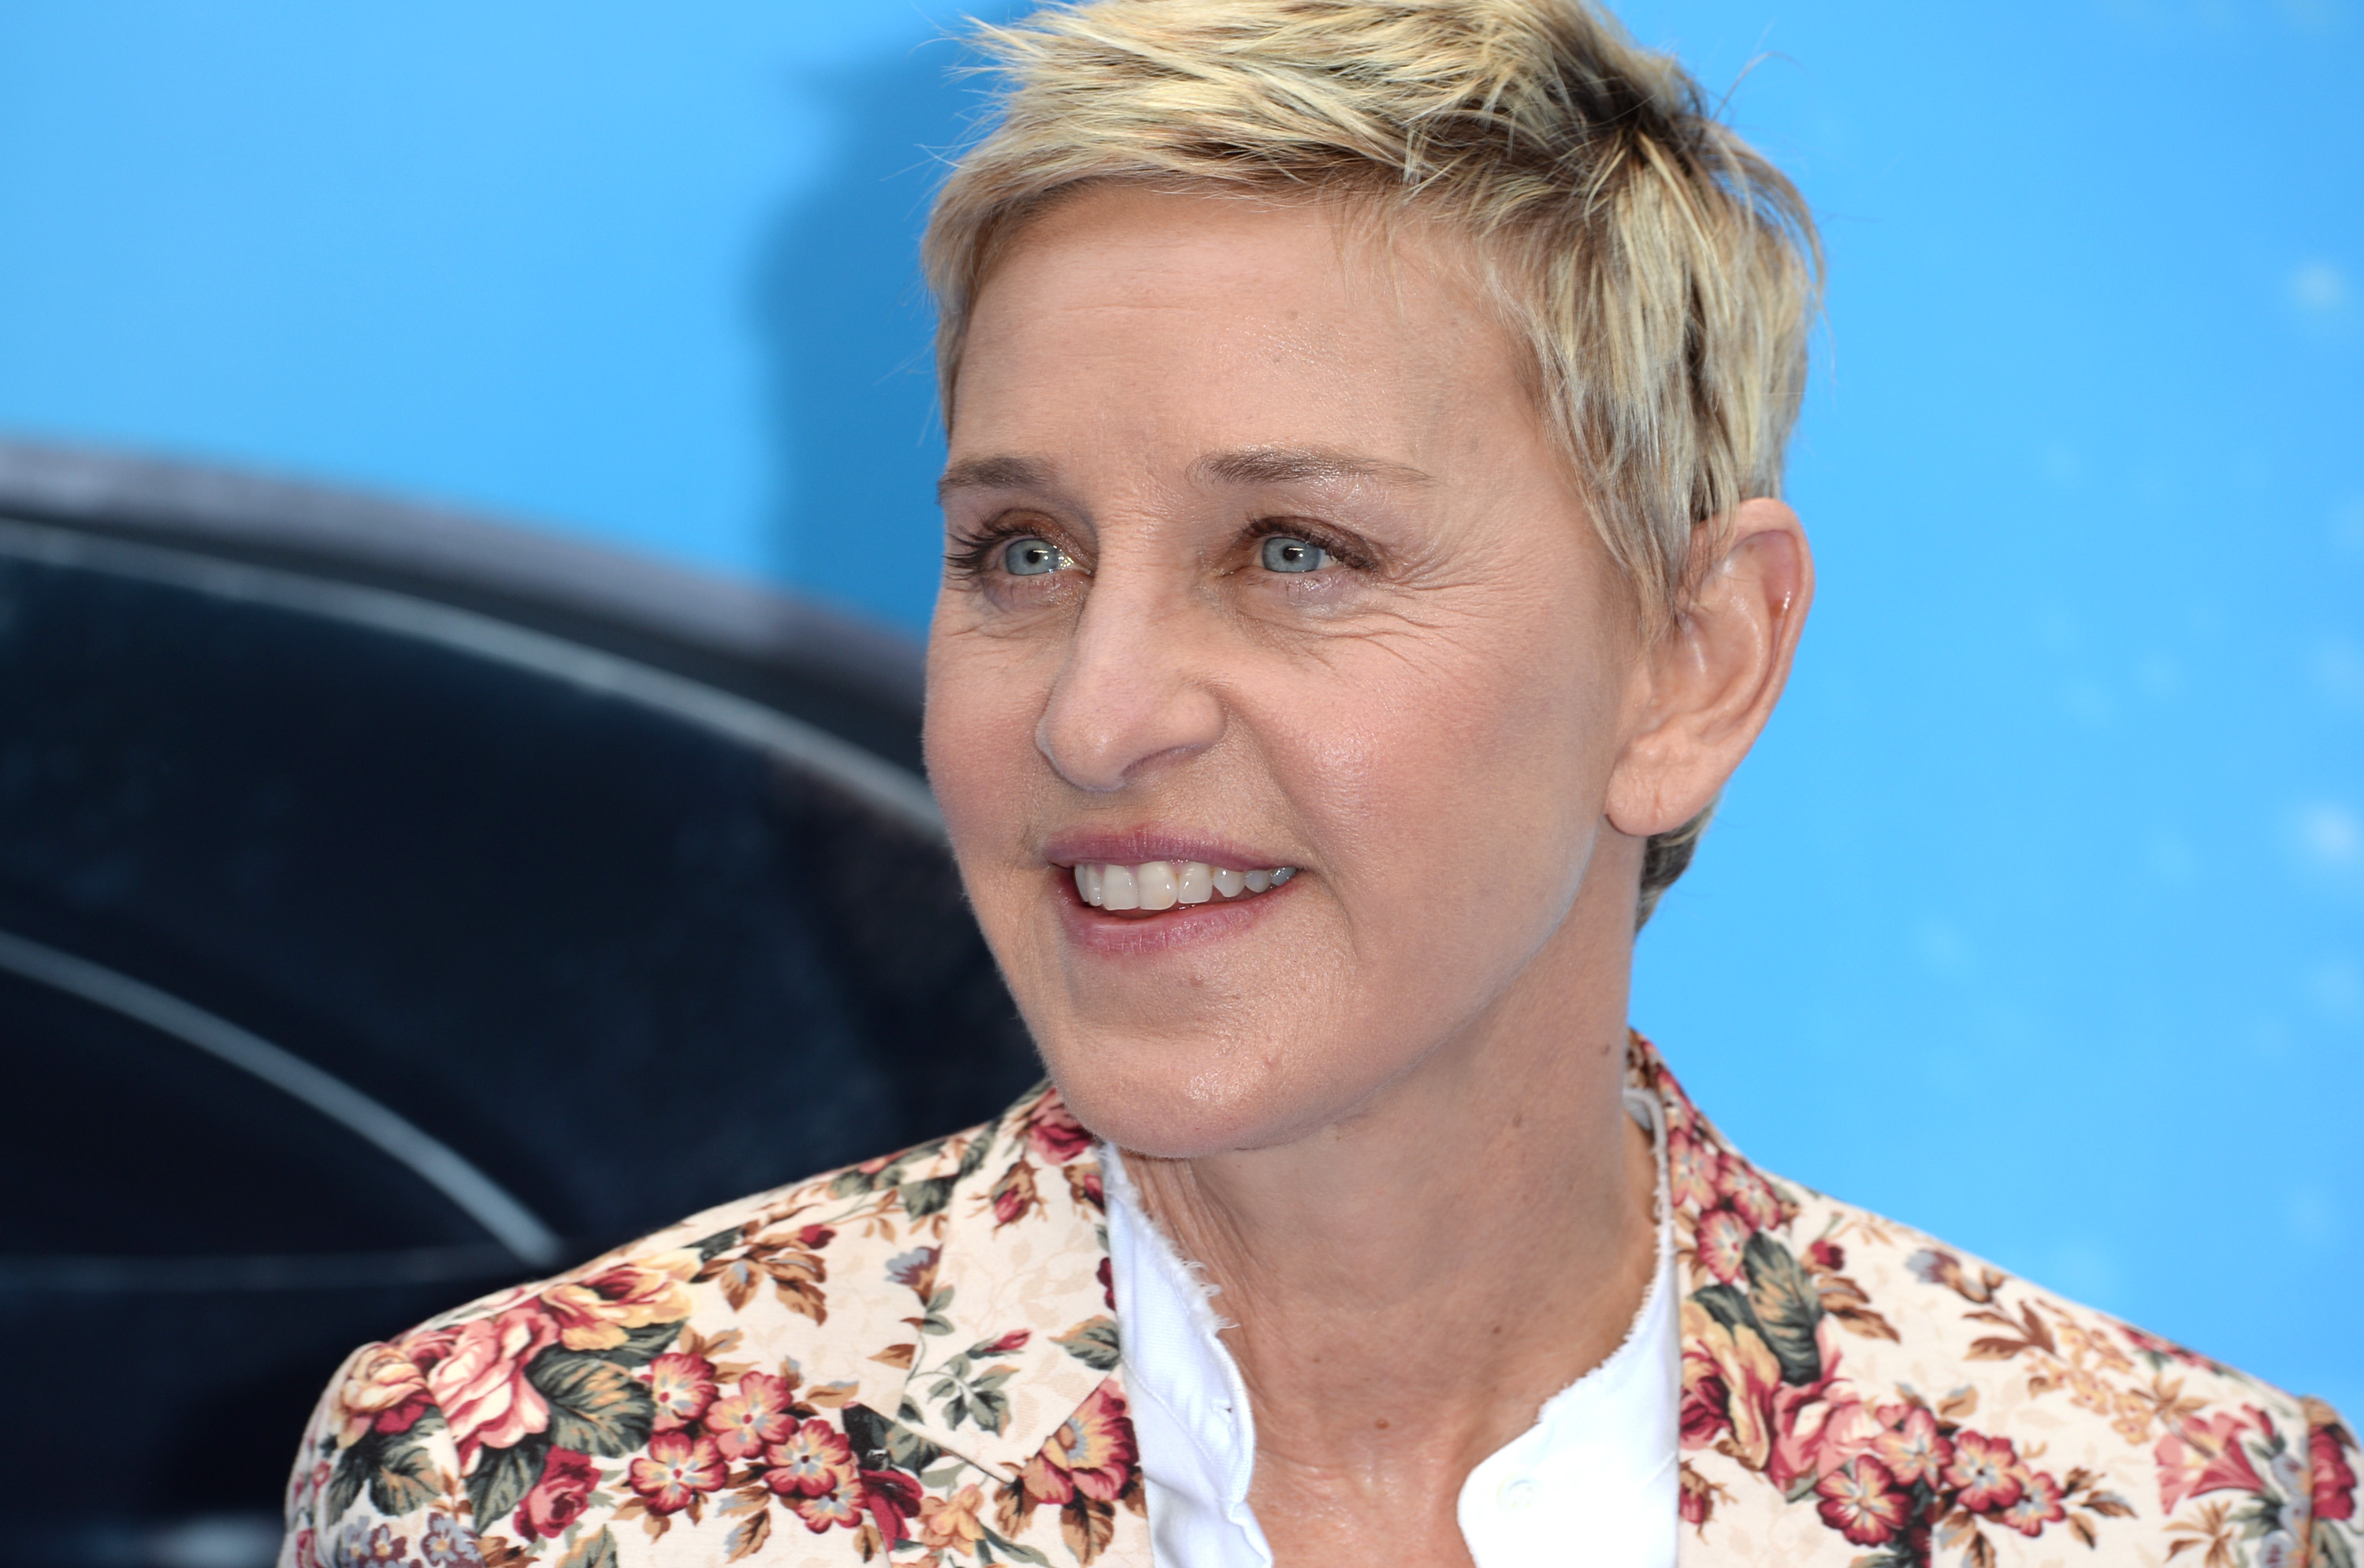 Ellen DeGeneres attends the UK Premiere of  Finding Dory  at Odeon Leicester Square in London on July 10, 2016.